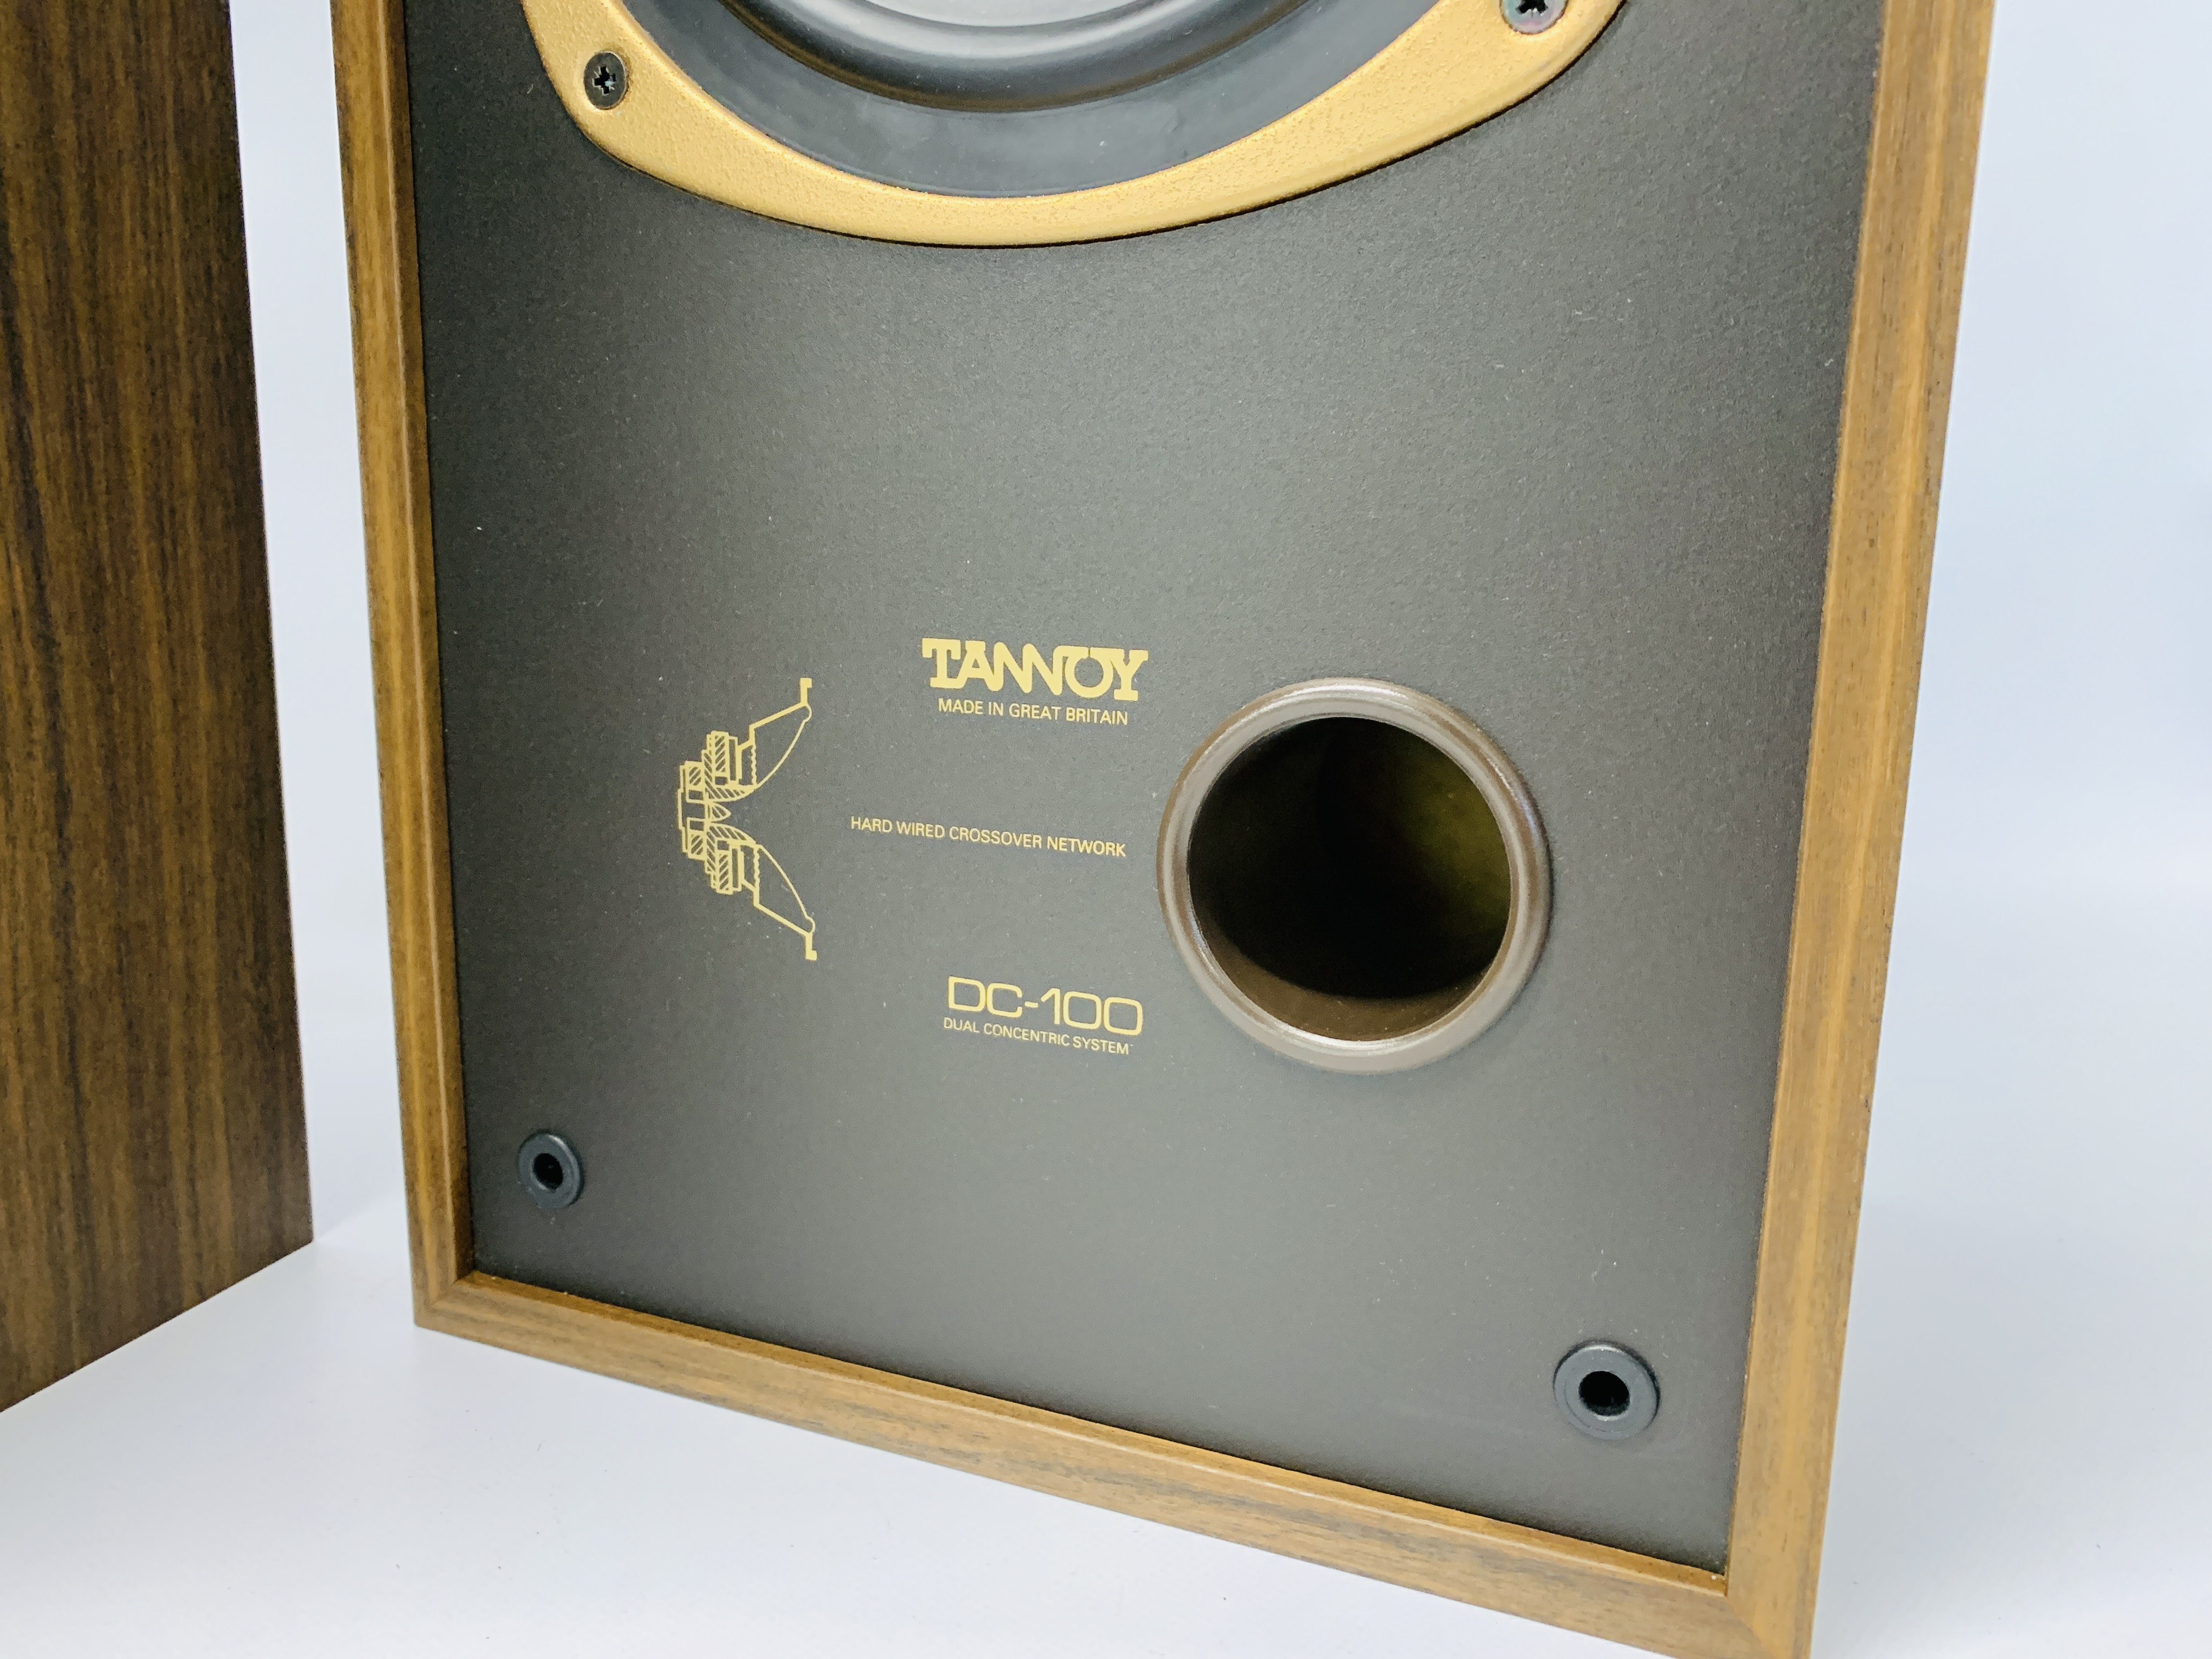 A PAIR OF DC-100 DUAL CONCENTRIC LOUD SPEAKERS - SOLD AS SEEN - Image 7 of 12